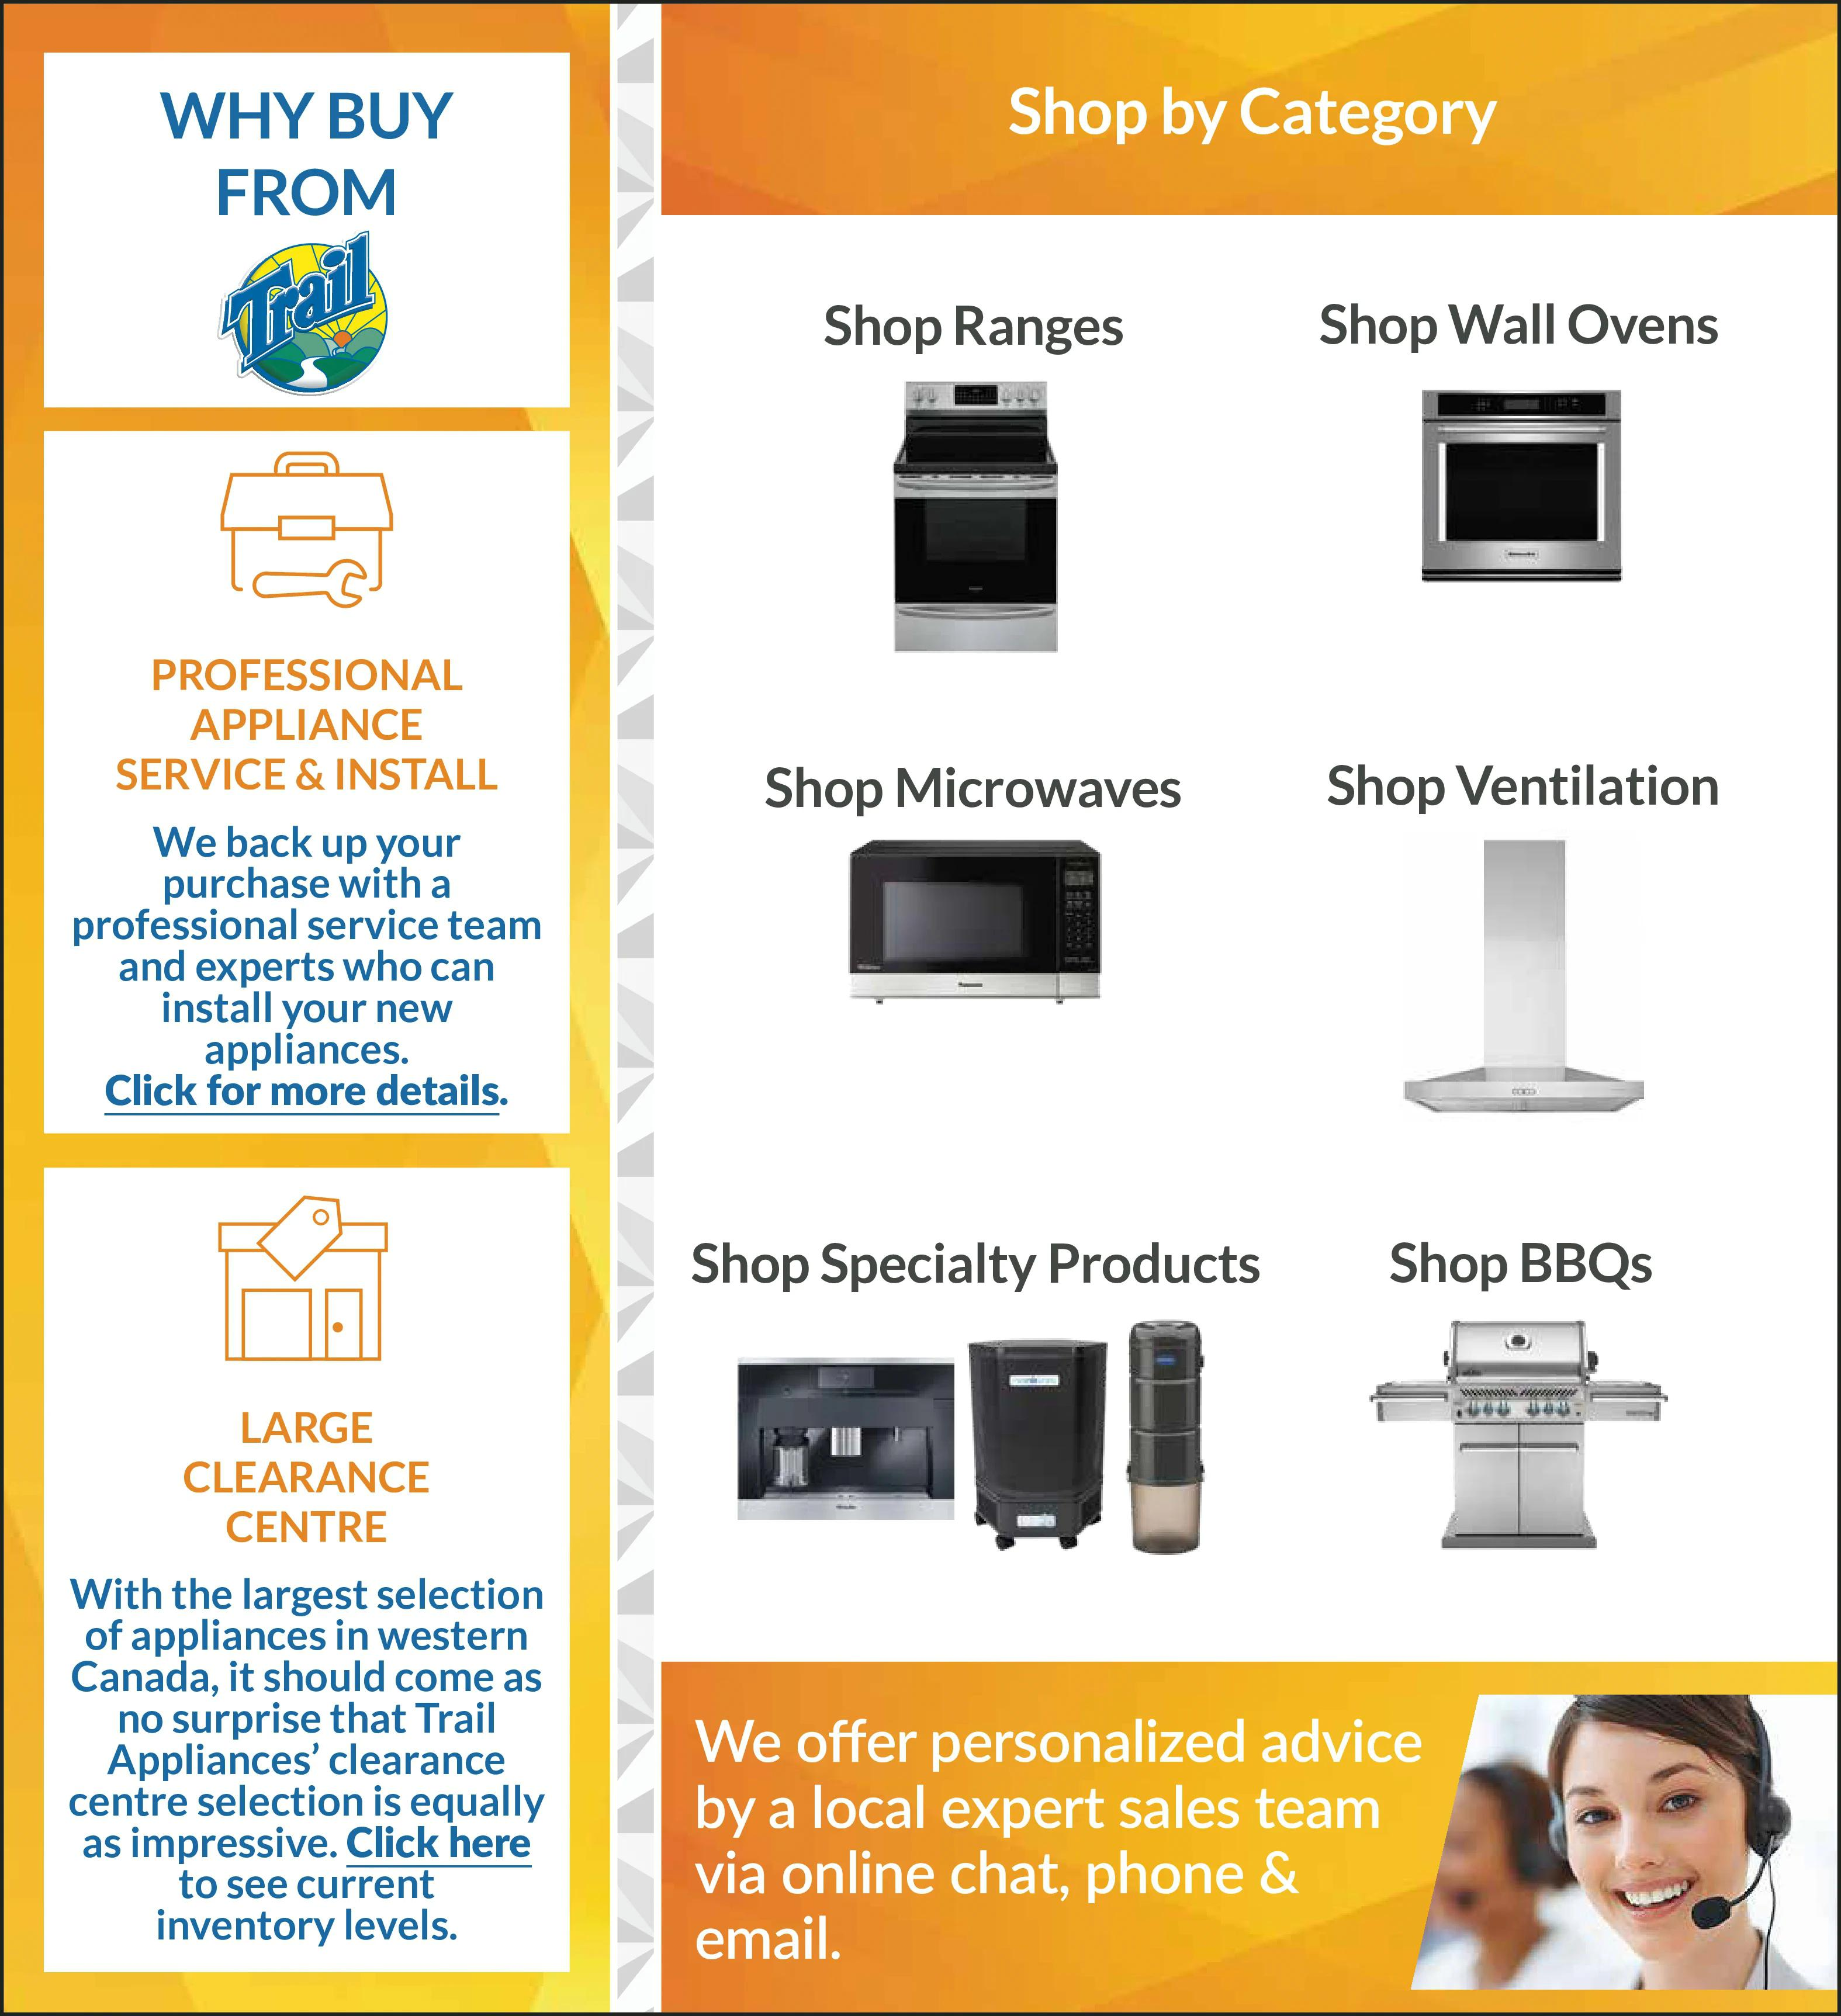 Trail Appliances - Weekly Flyer Specials - Page 6